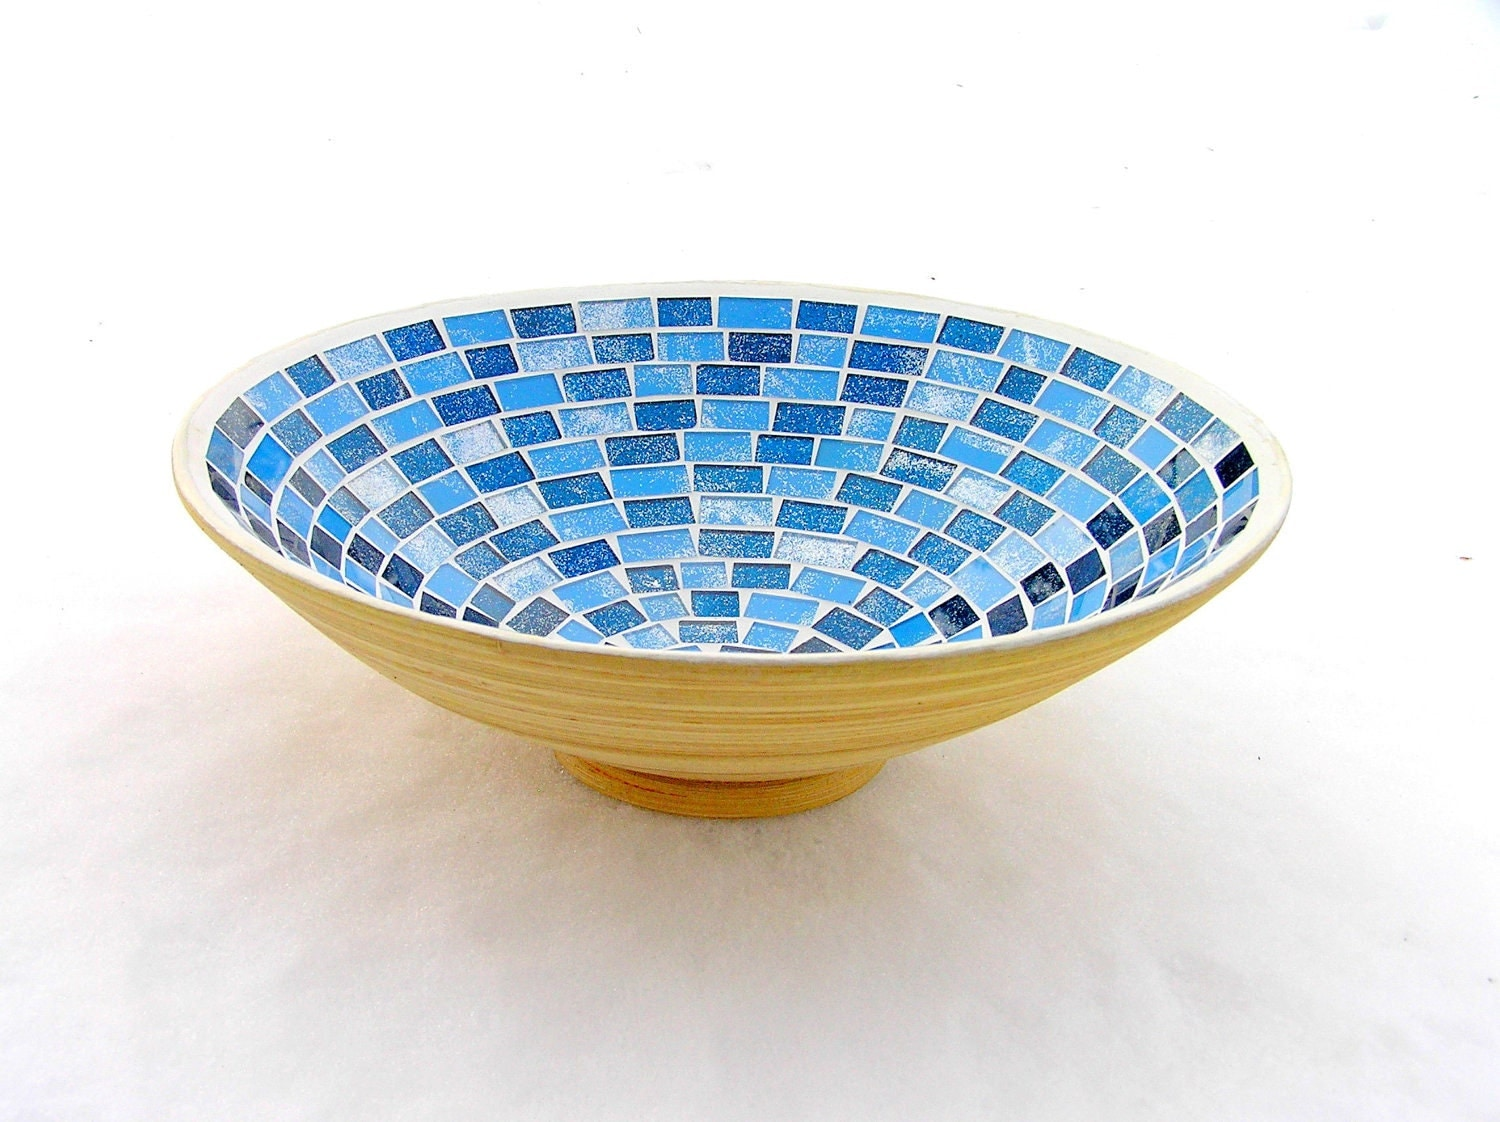 Blue bowl glass mosaic home decor by sirlimosaic on etsy for Mosaic home decor